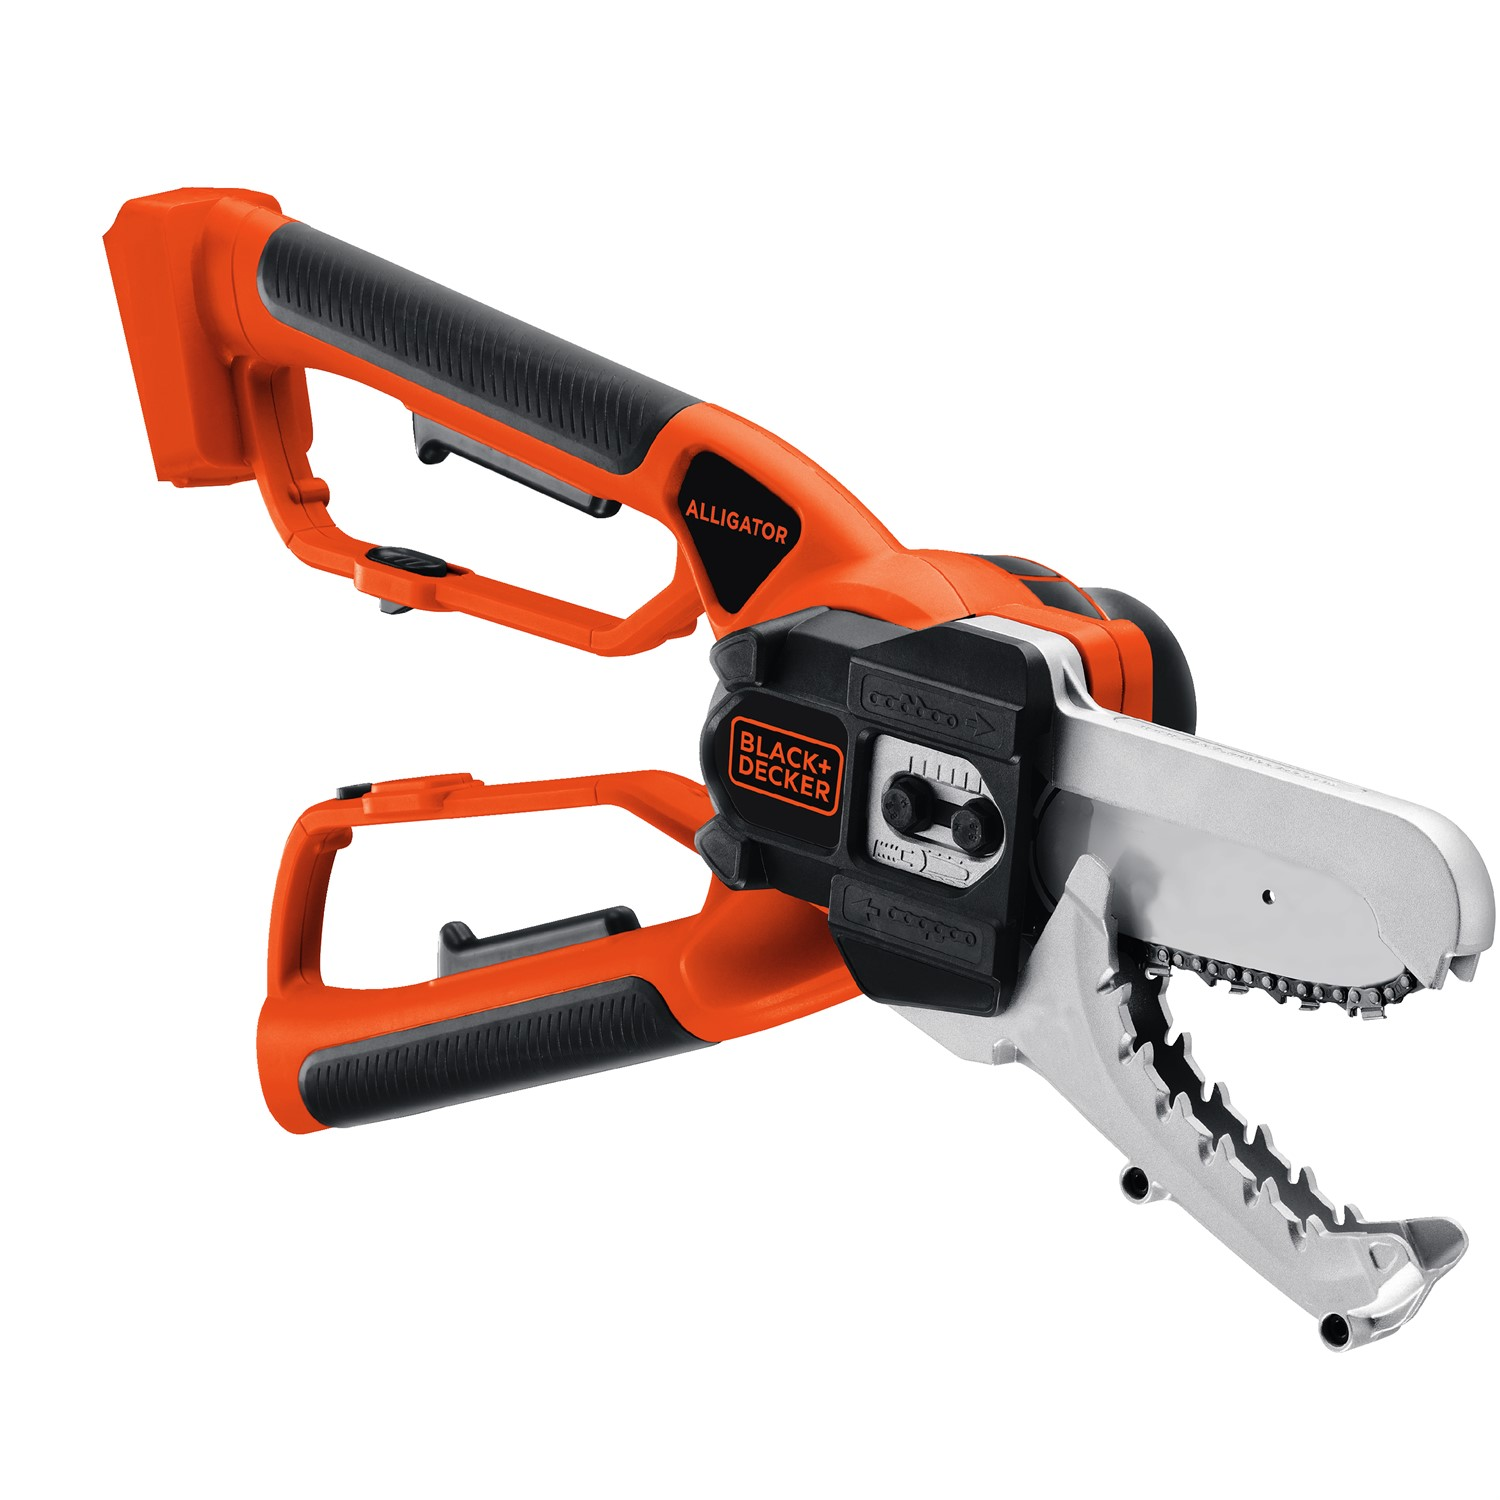 BLACK+DECKER LLP120B 20V MAX Cordless Lithium-Ion Alligator Lopper (Bare Tool)